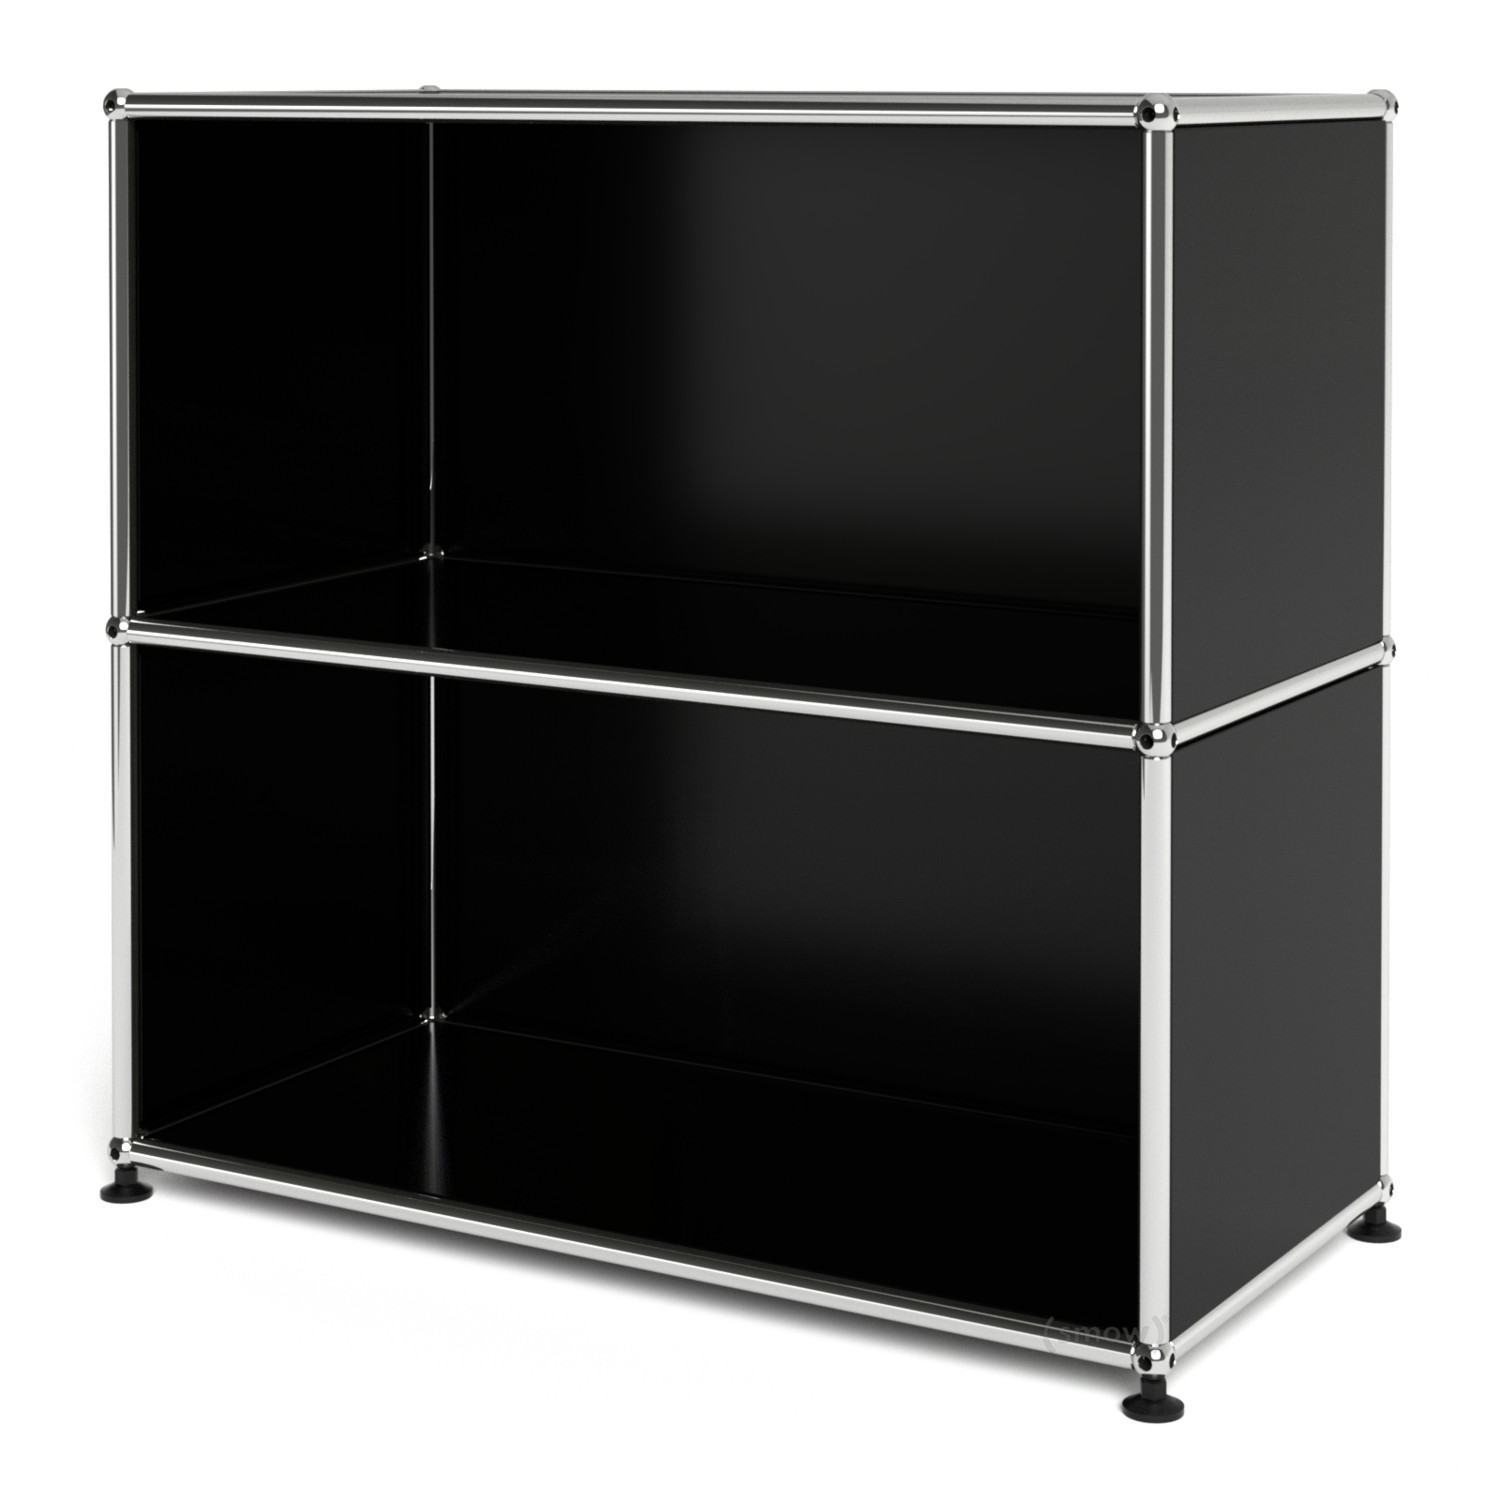 Usm haller sideboard m open graphite black ral 9011 by for Usm haller sideboard weiay